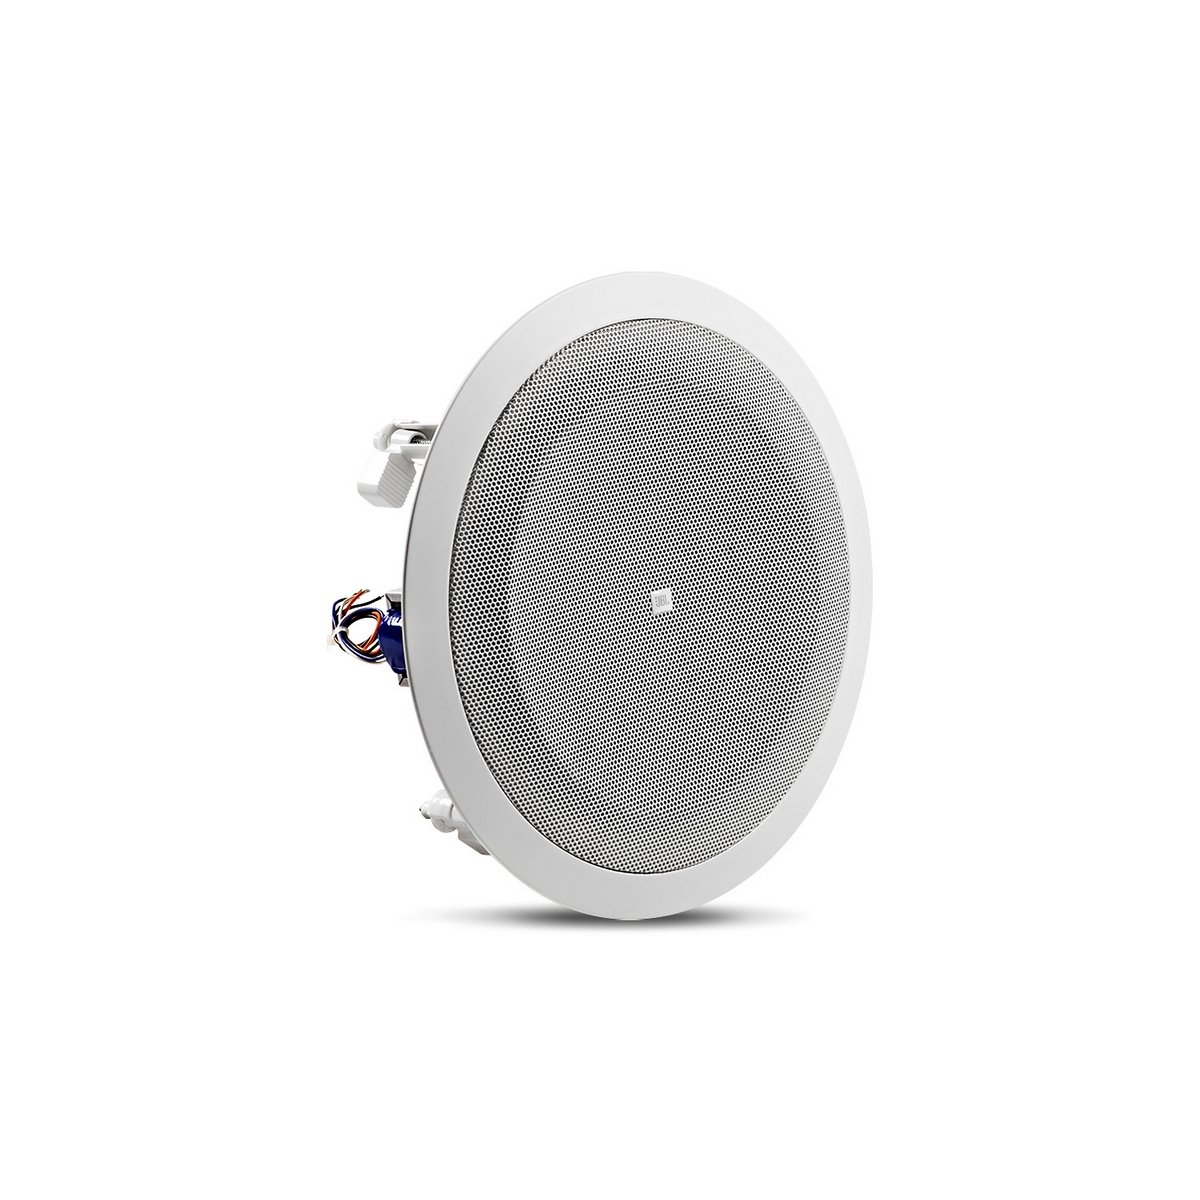 JBL 8128 | 8in Full-range In-Ceiling Loudspeaker (4 speakers) by JBL